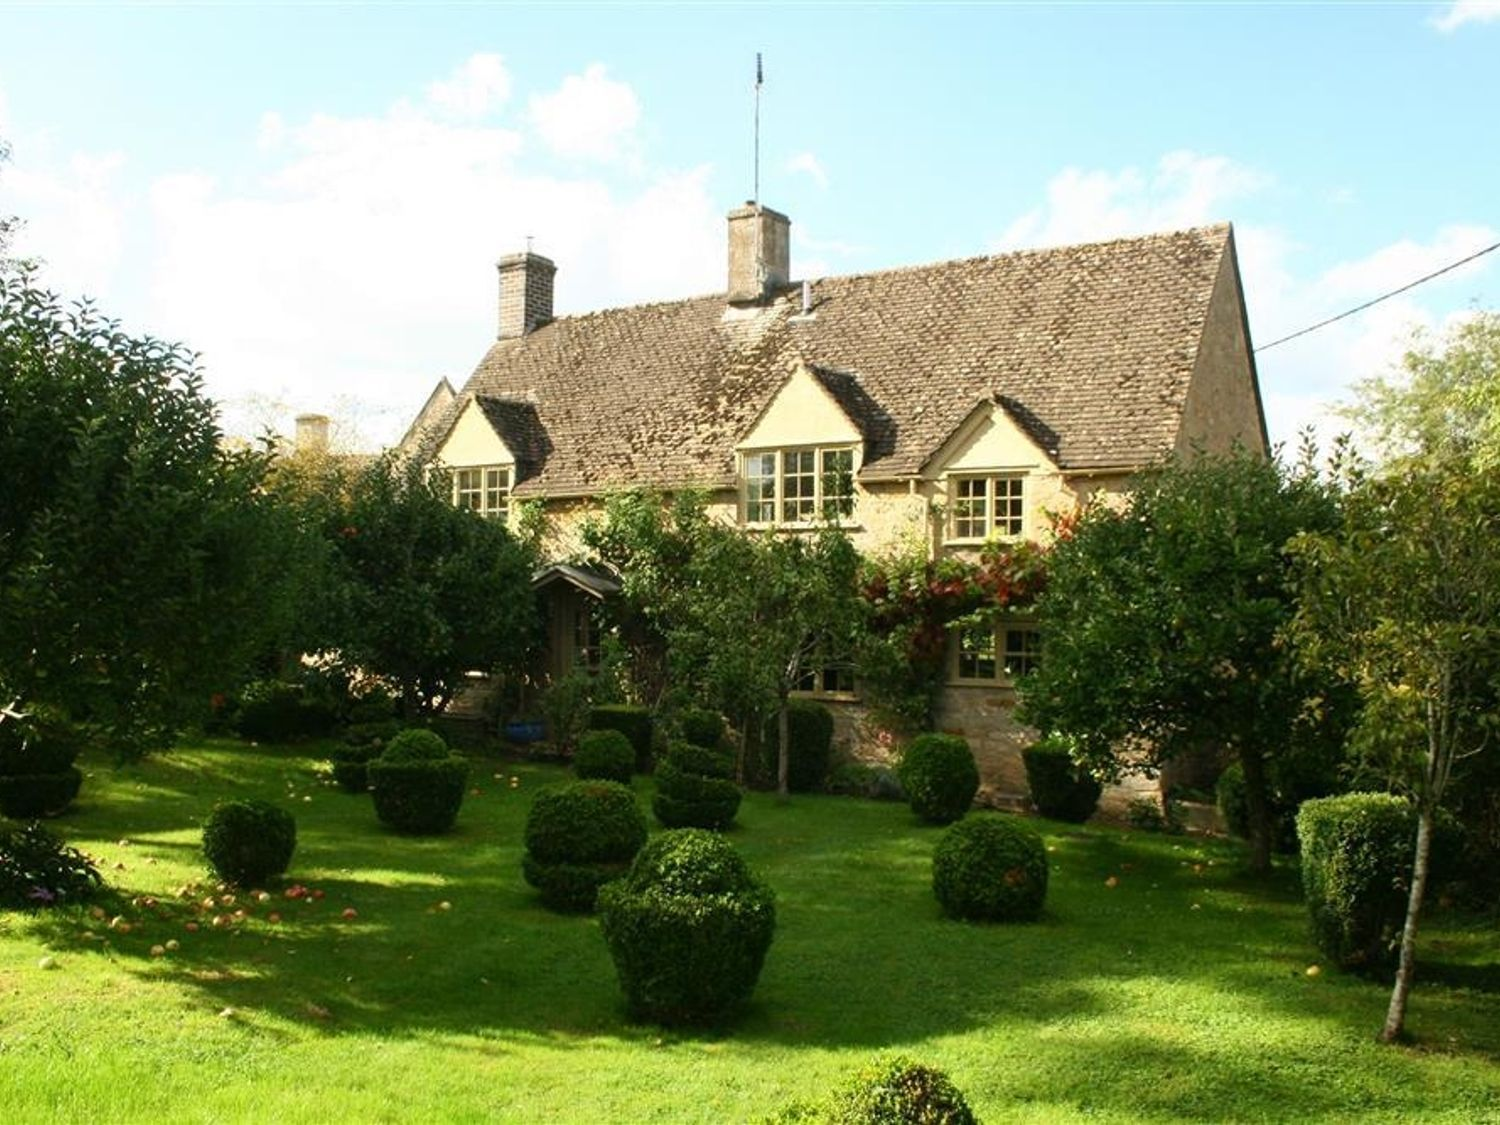 Looking for a holiday cottage in the Cotswolds? Try Pear Tree Cottage